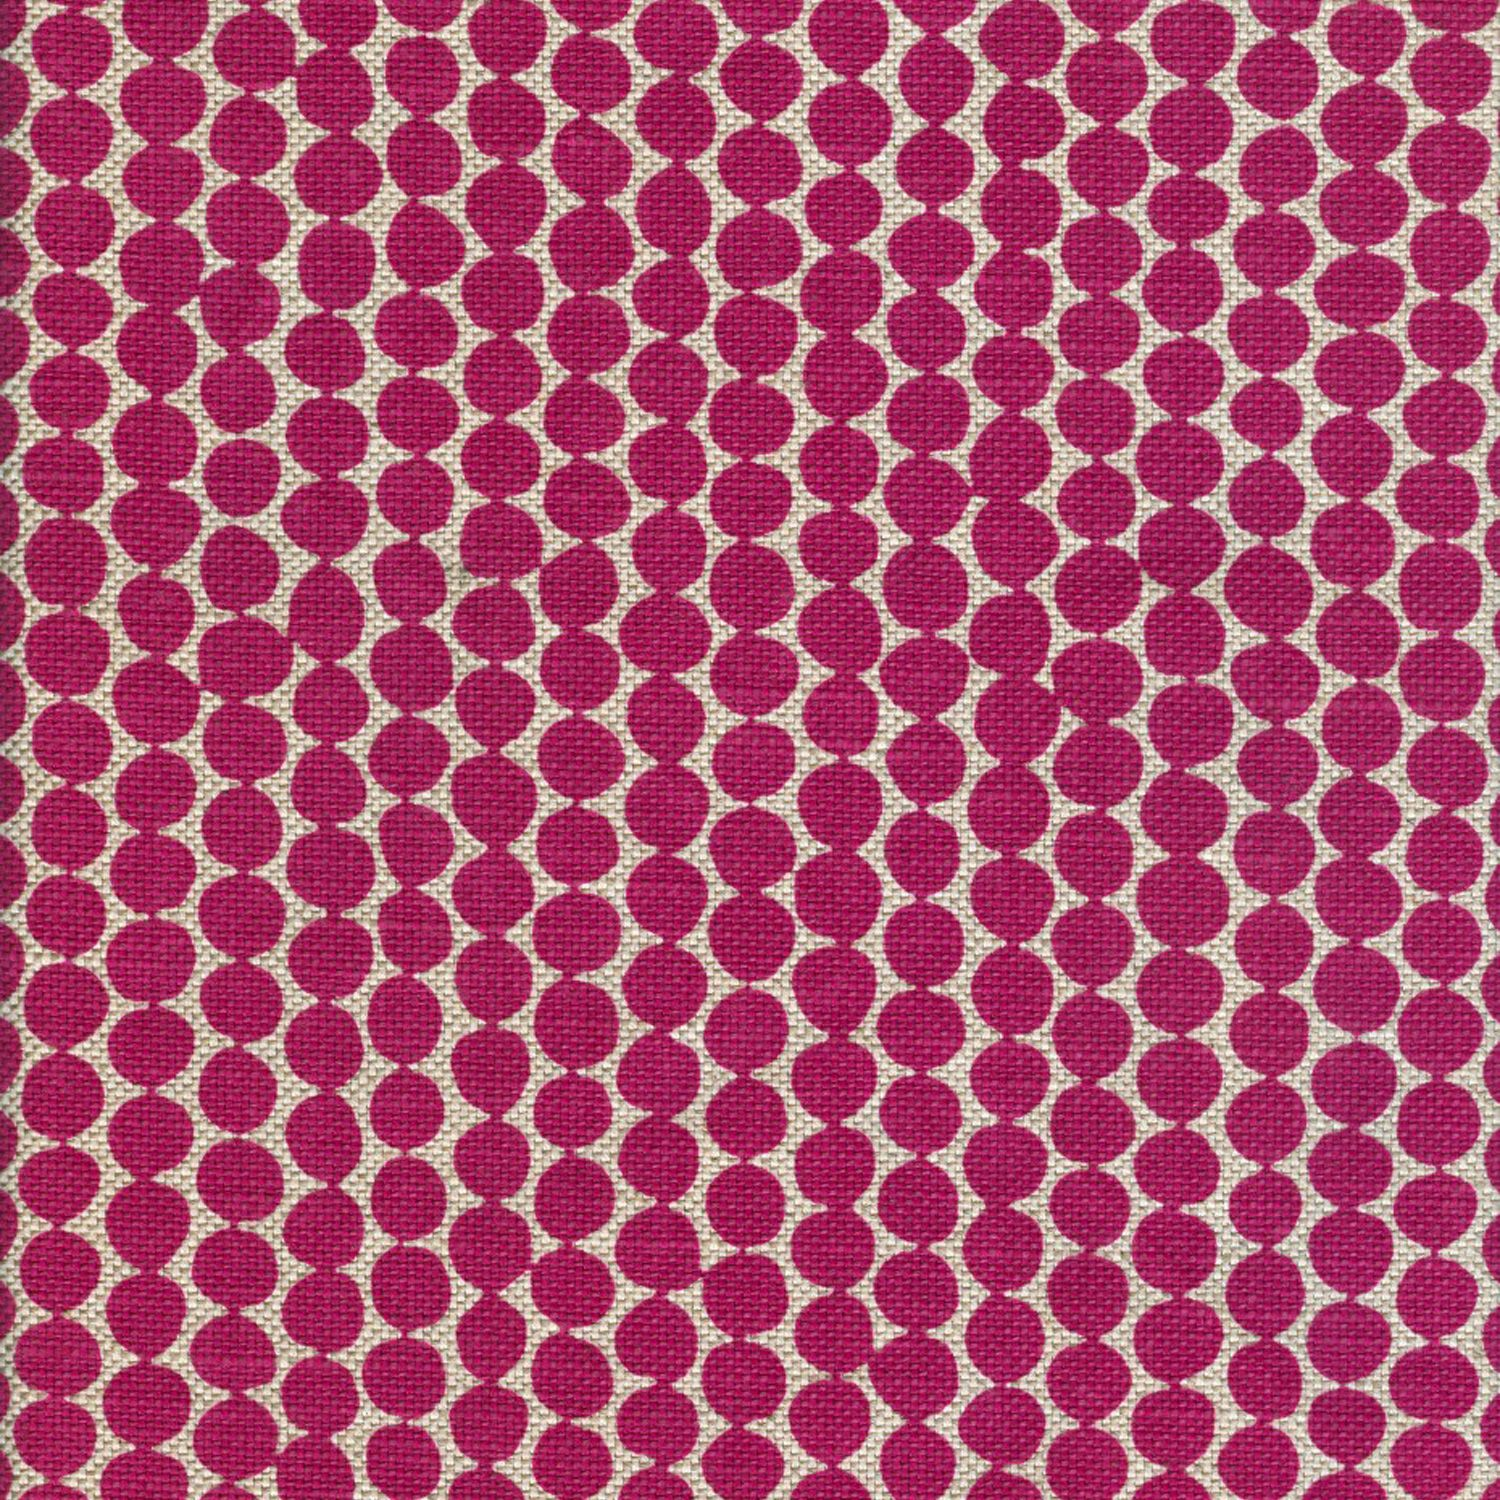 Hable Classic Beads Magenta Wheat Dotted Fabric Fabric Classic Rugs Pattern Play